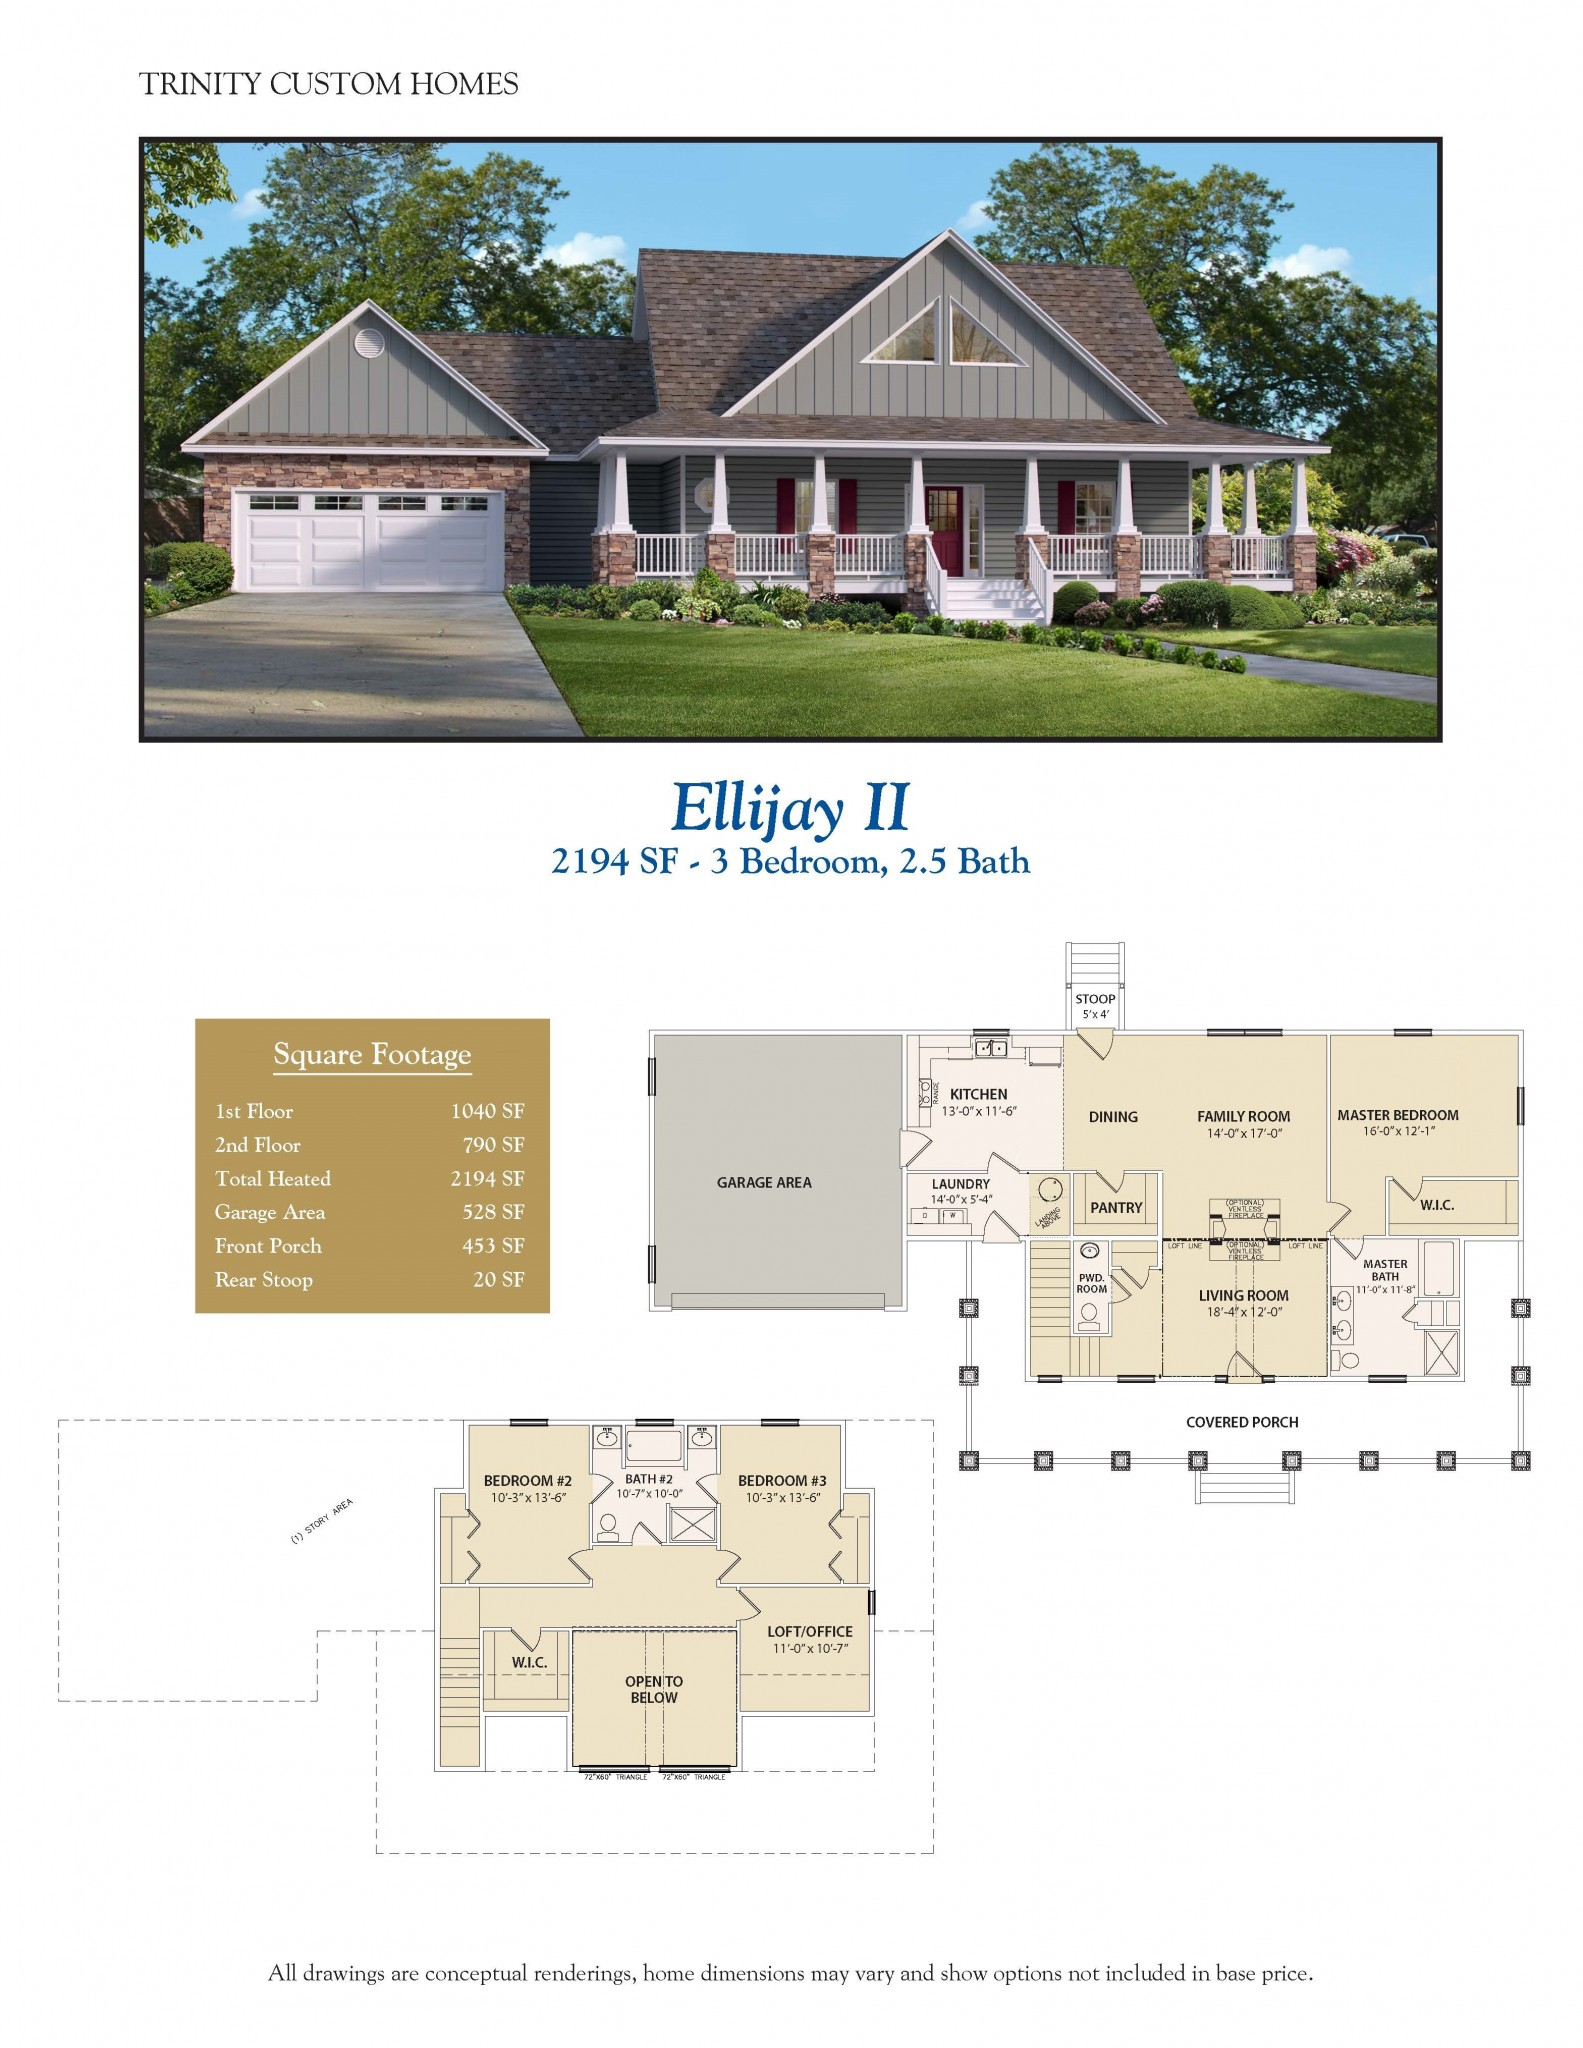 Ellijay ii welcome to trinity custom homes for New custom home plans